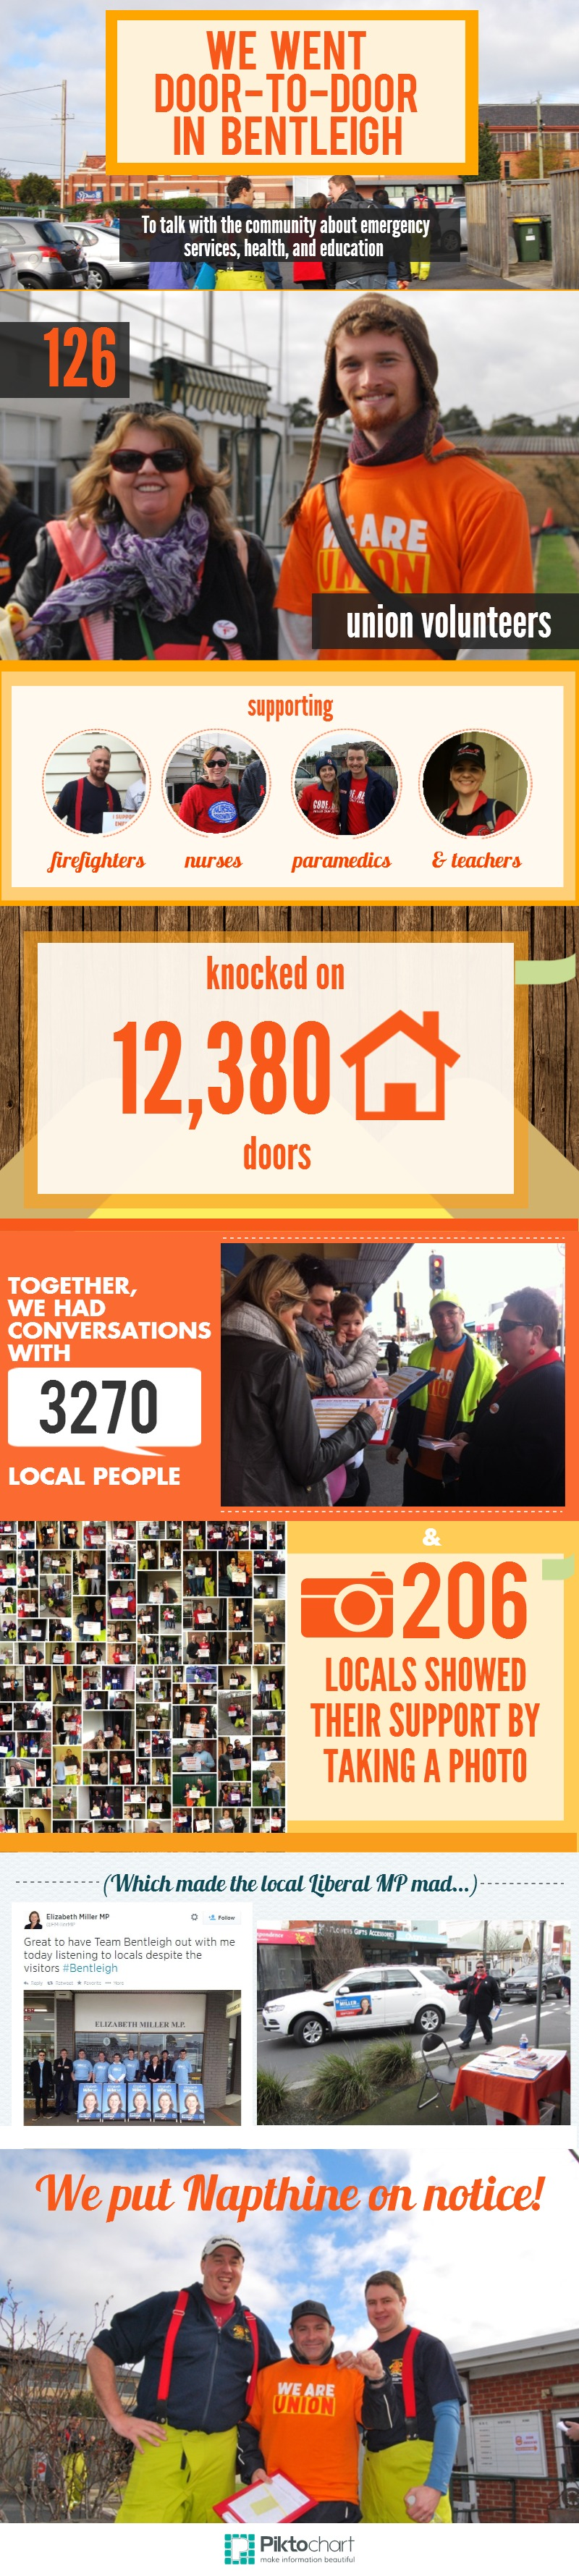 14.07.21_Bentleigh_doorknock_infograph.jpg